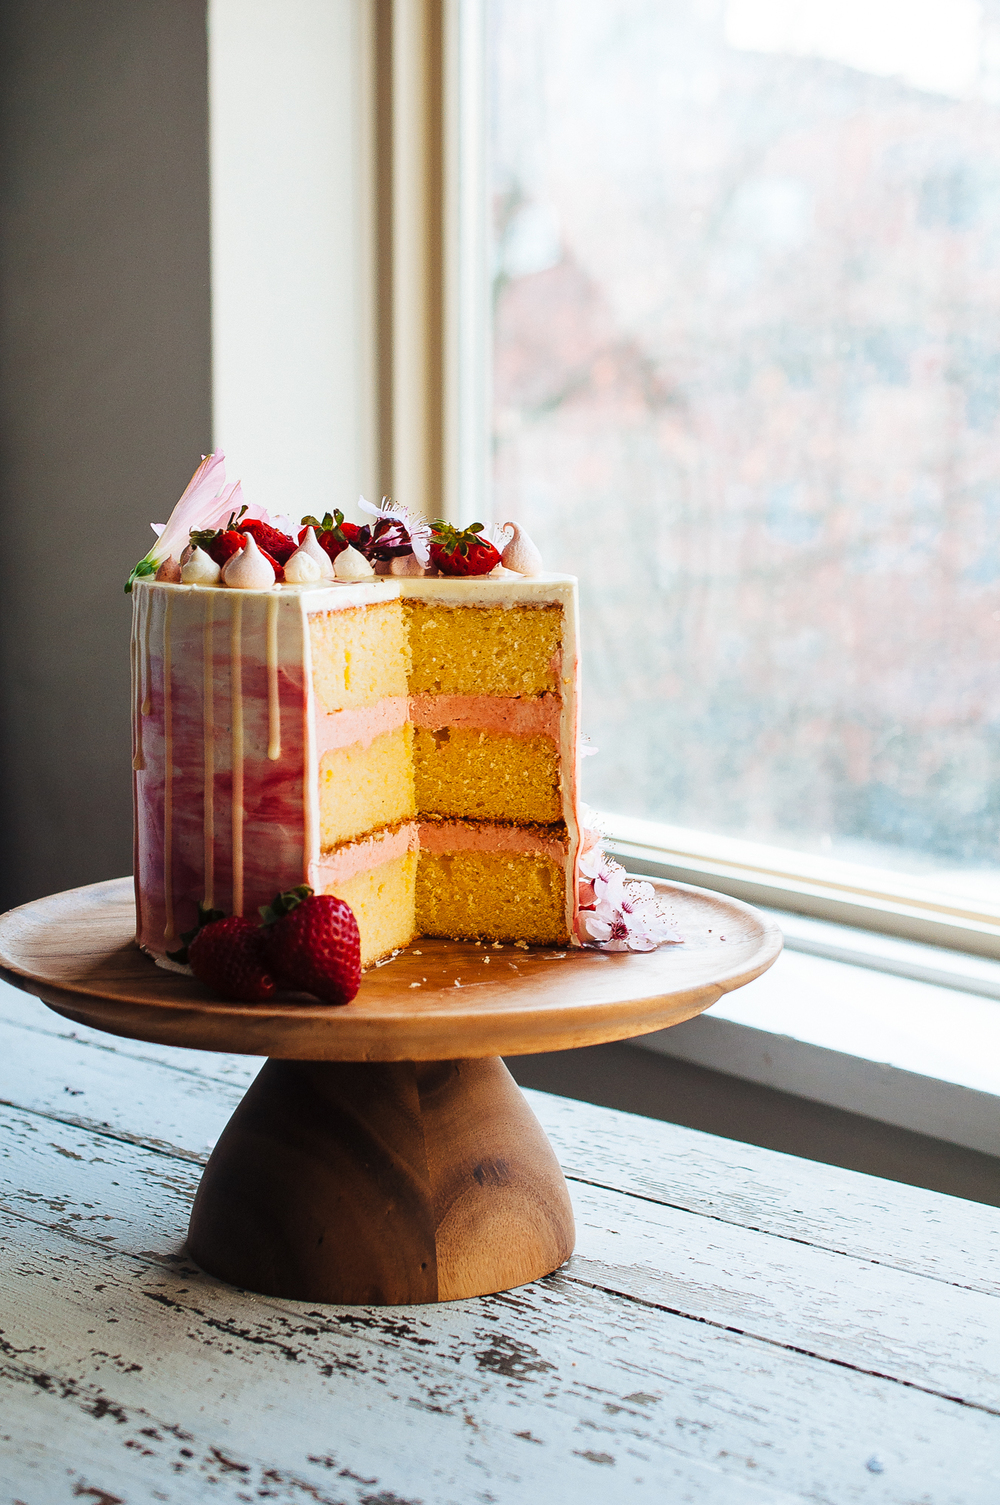 Strawberry and vanilla cake 20.jpg